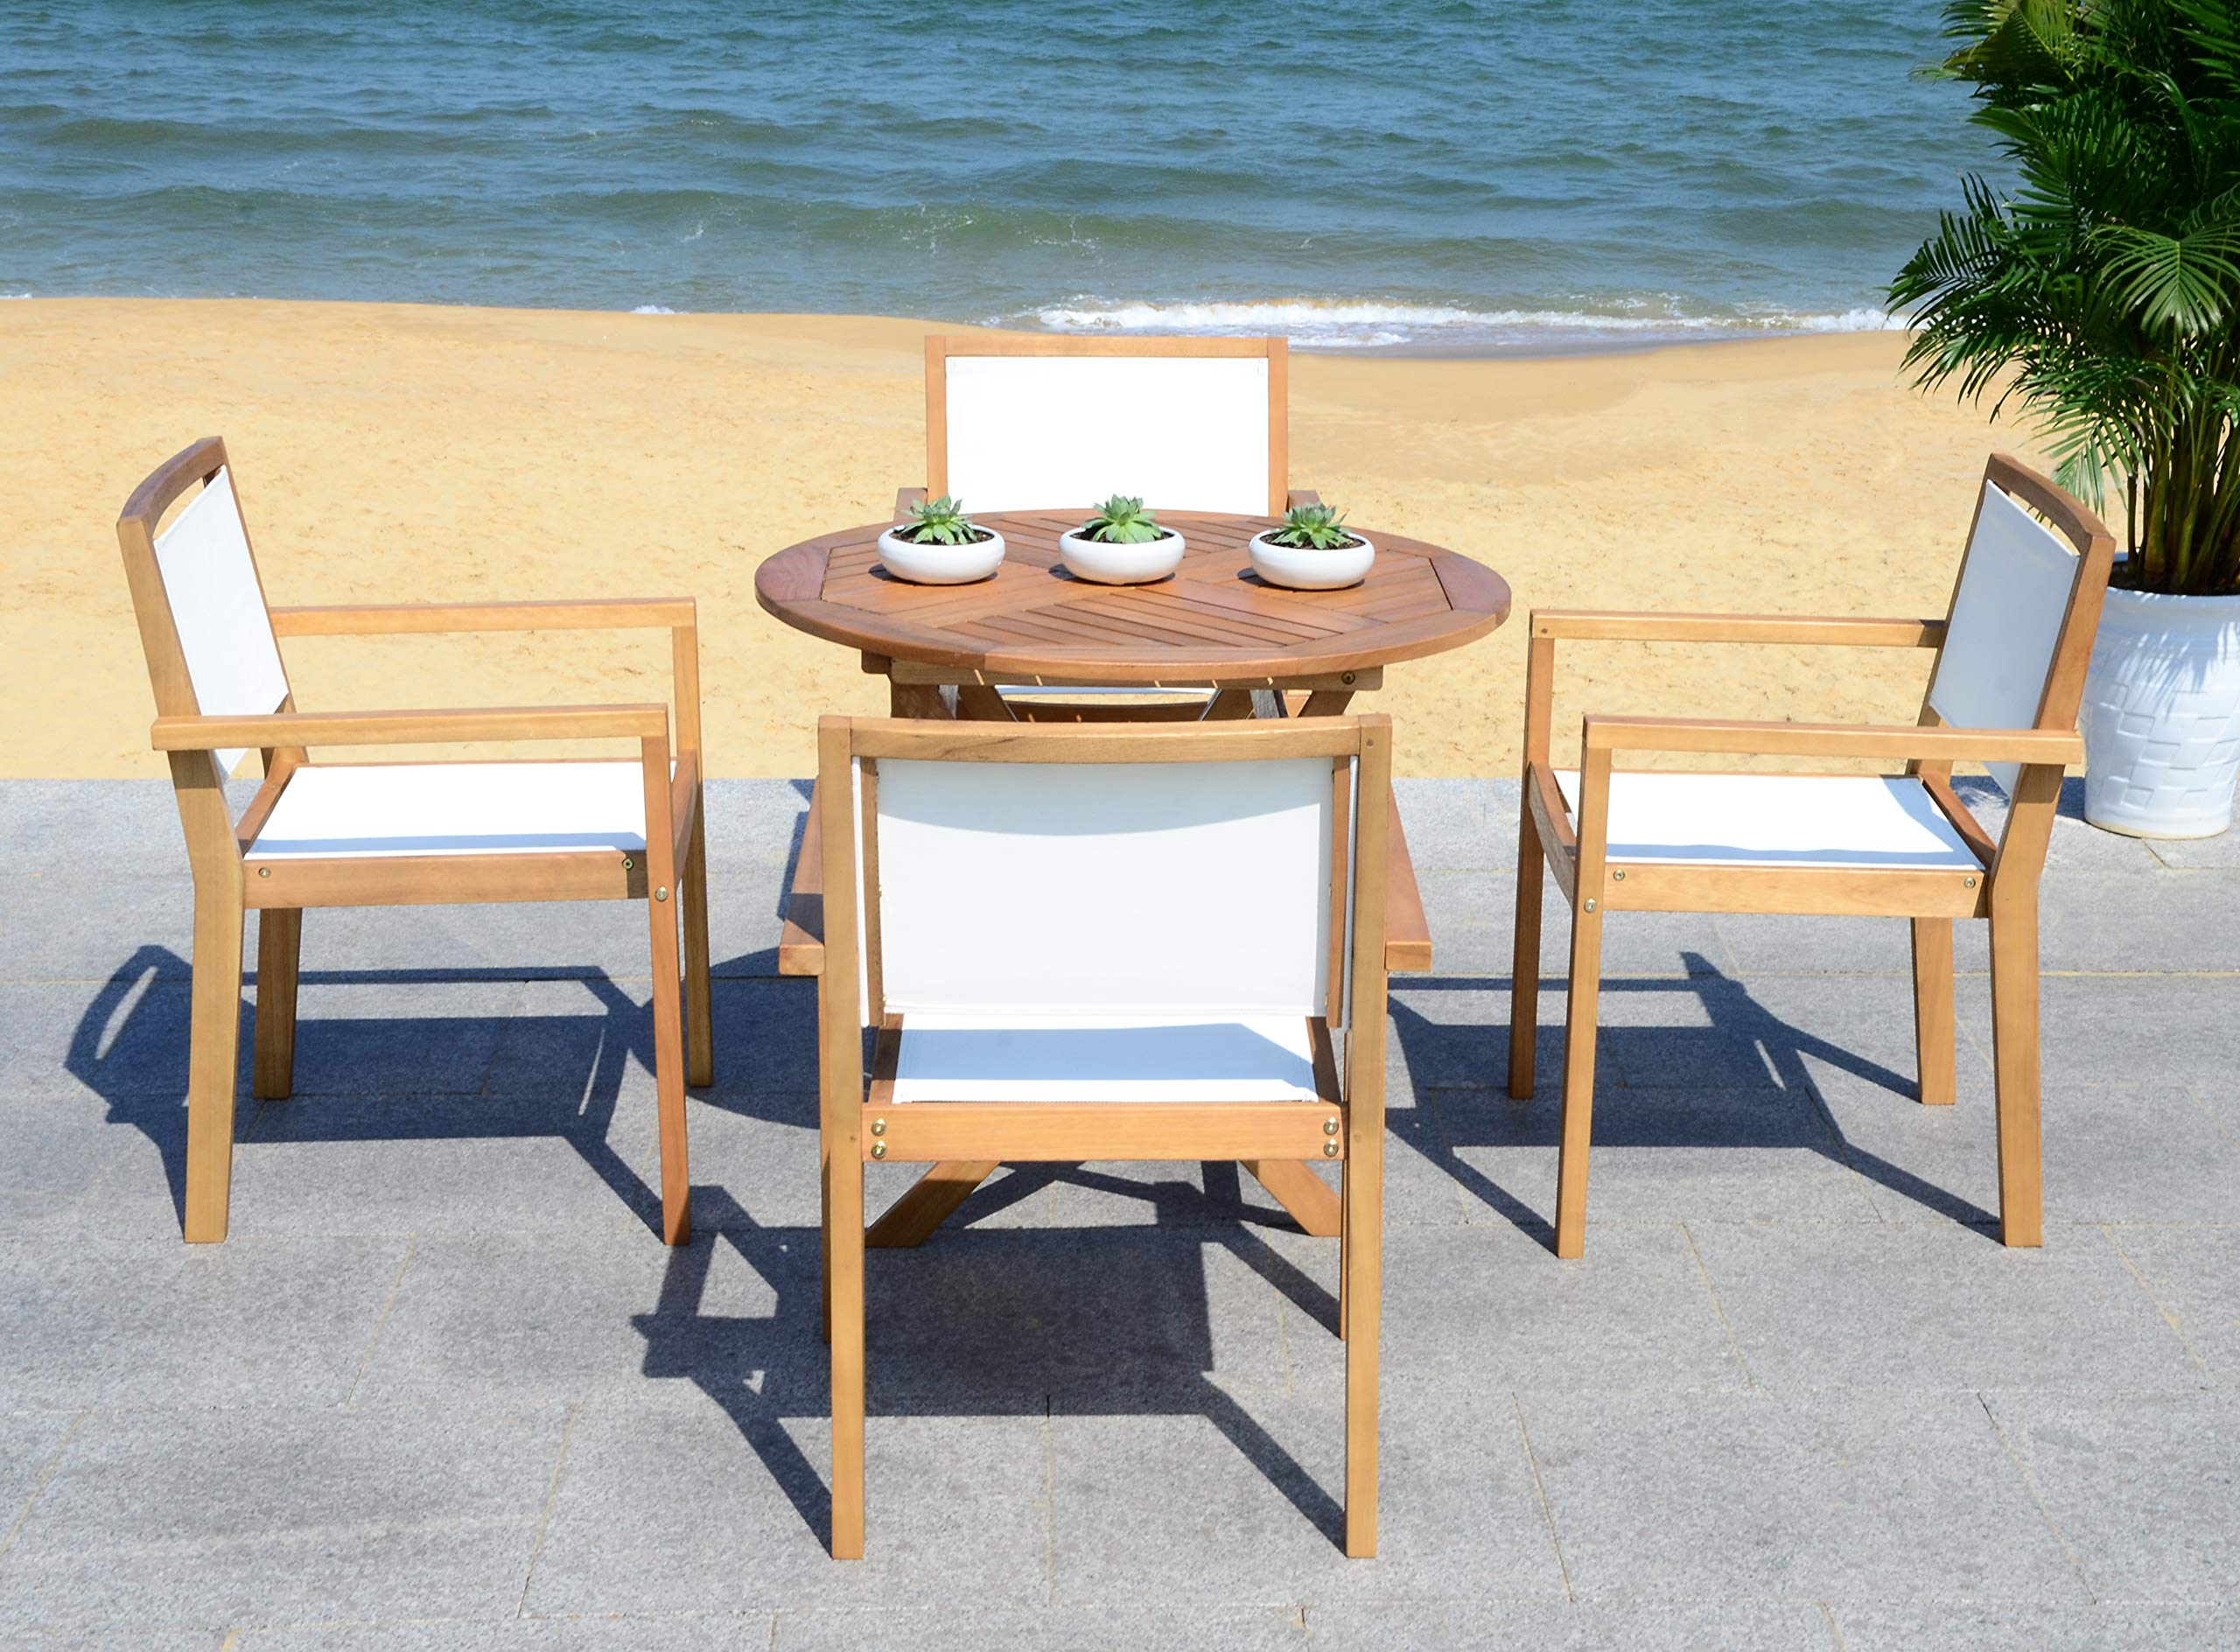 Safavieh PAT7041A Collection Chante Teak 35.4'' Round Table 5 Piece Outdoor Dining Set